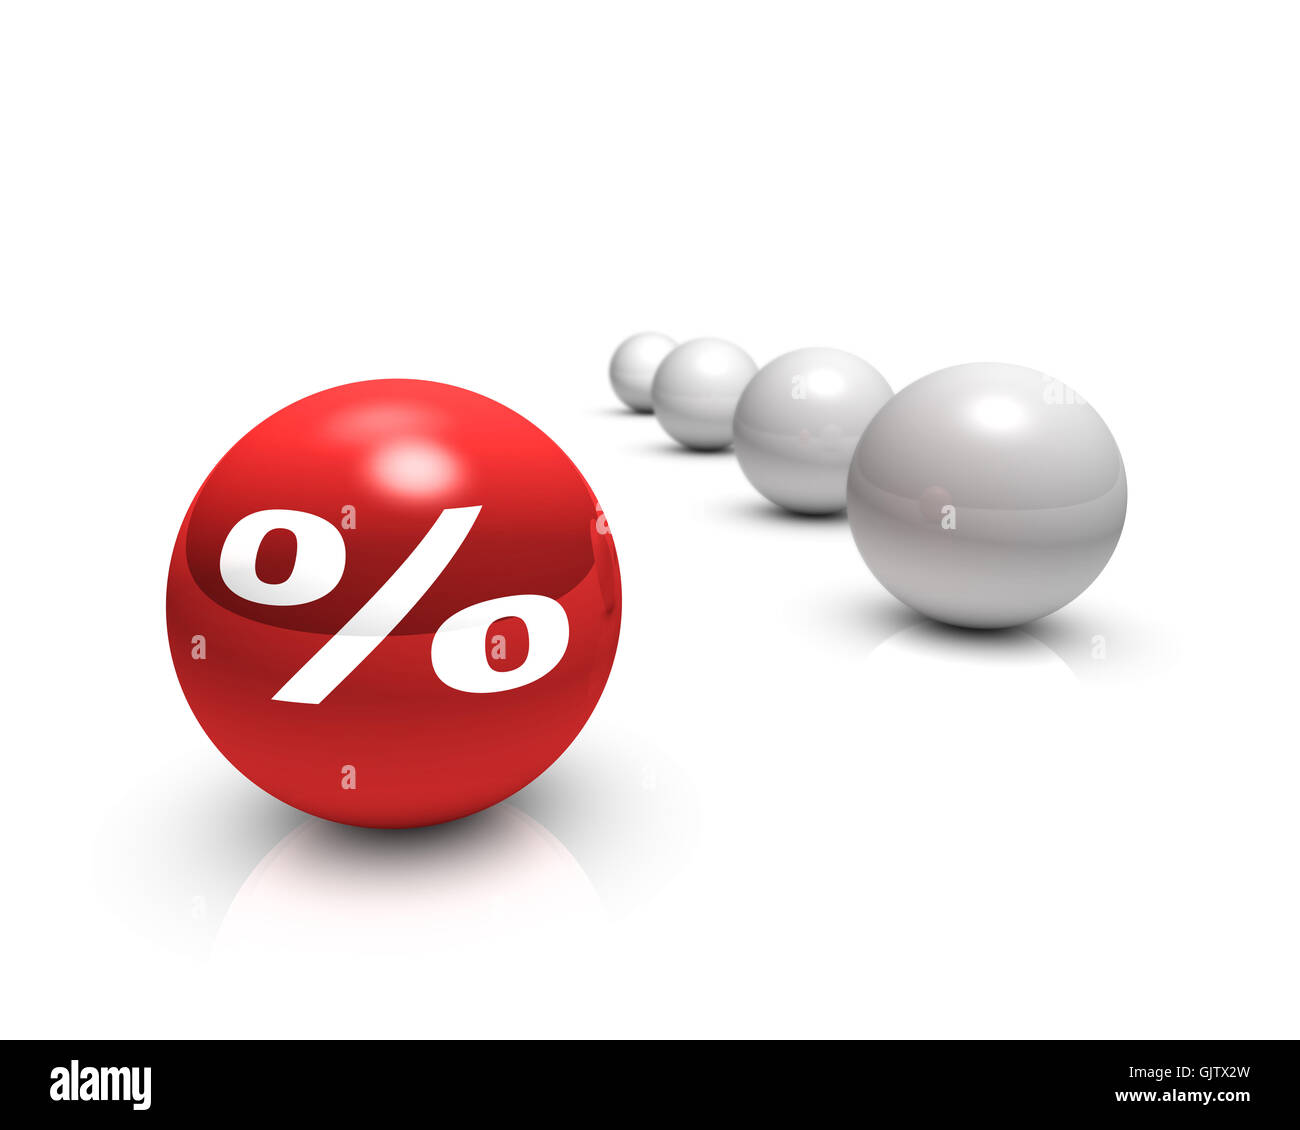 bargain buy inexpensive cheap - Stock Image